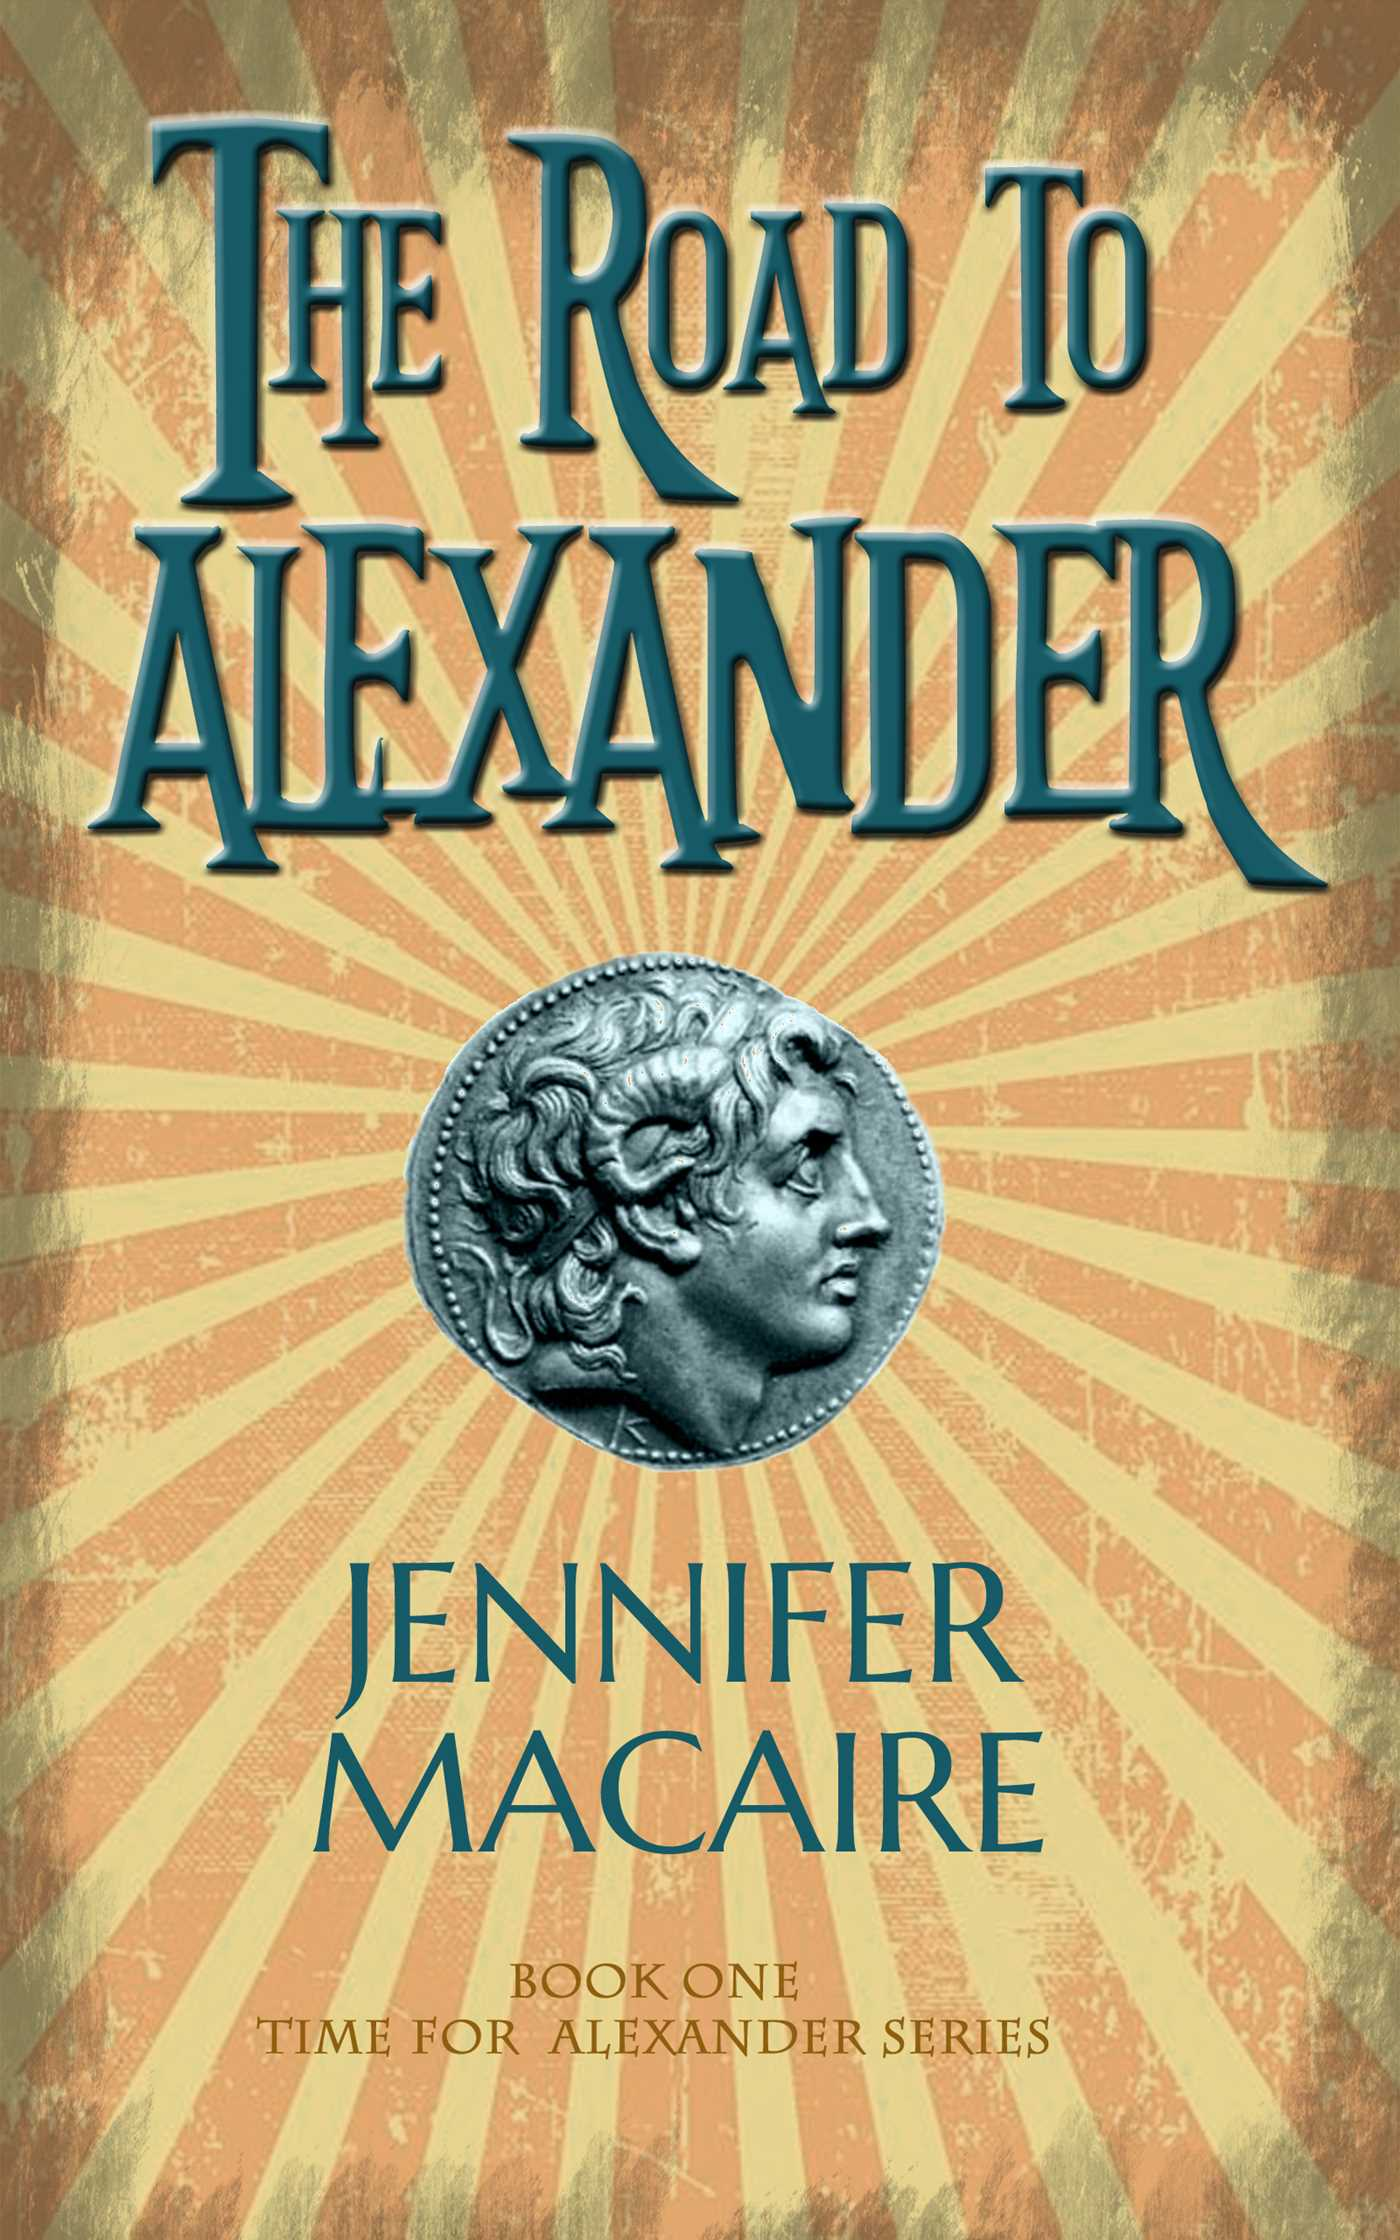 The road to alexander 9781682996072 hr